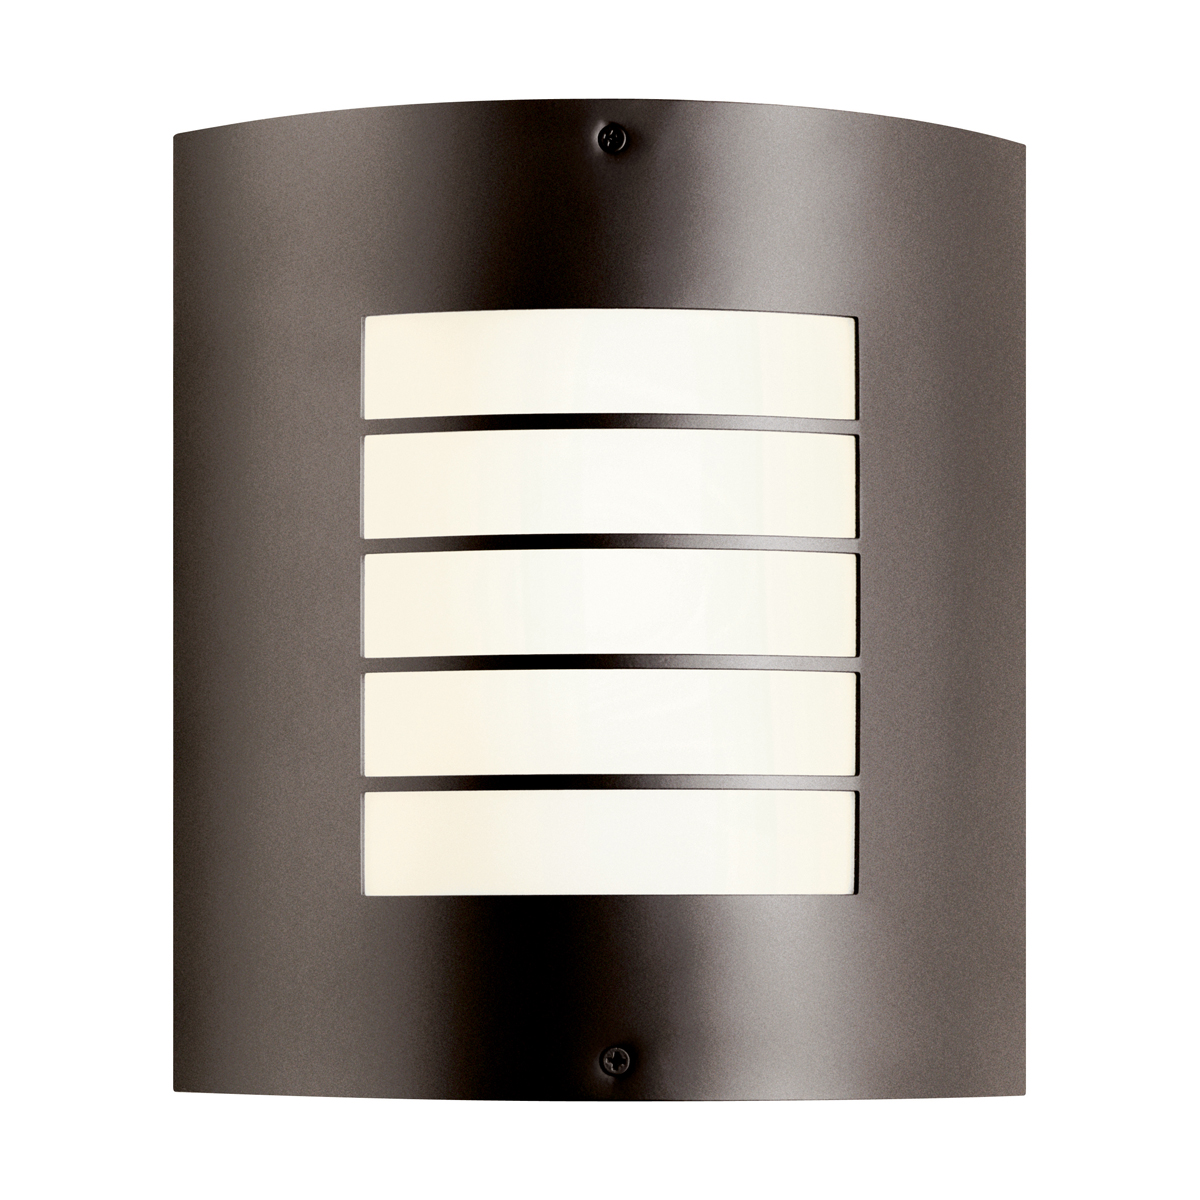 Fluorescent Exterior Wall Lights : Kichler Lighting (10640AZ) Newport 1-Light Fluorescent Outdoor Wall Sconce in Architectural Bronze